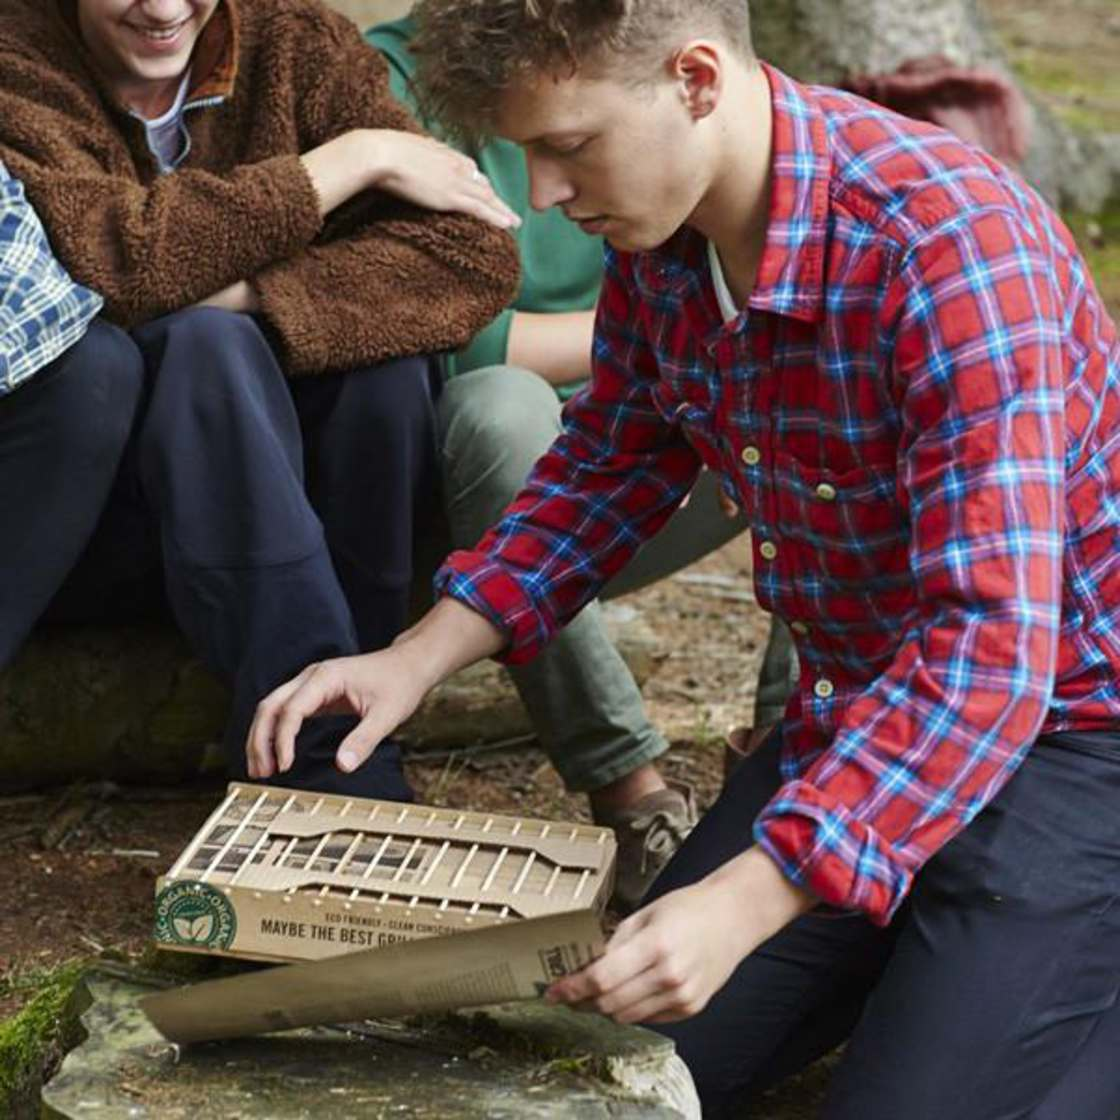 Instant Nature Grill – An instant and biodegradable barbecue!